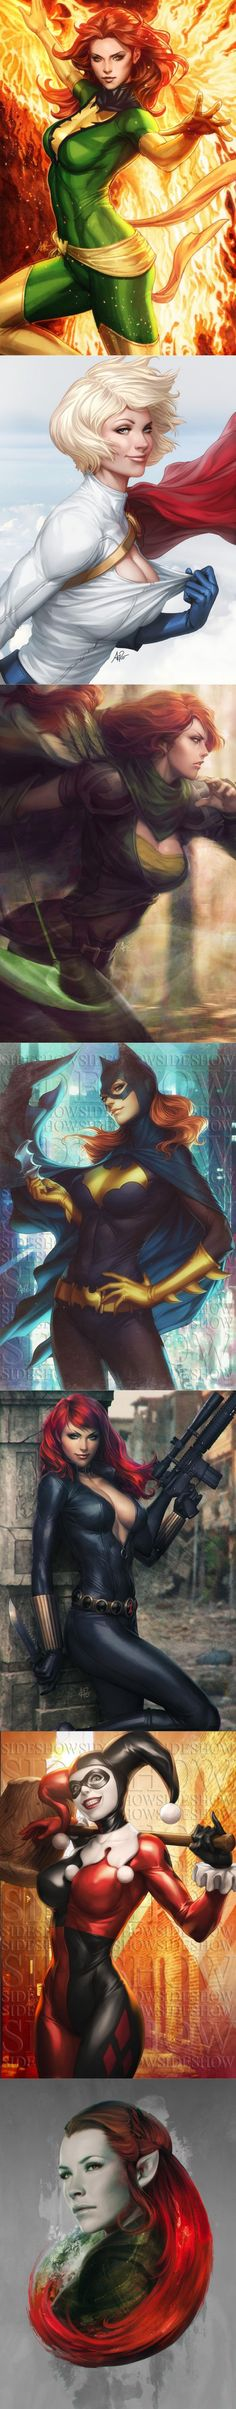 DC and Marvel heroines by artgerm Comic Book Characters, Comic Character, Comic Books Art, Comic Art, Heros Comics, Marvel Dc Comics, Comic Anime, Anime Comics, Marvel Girls